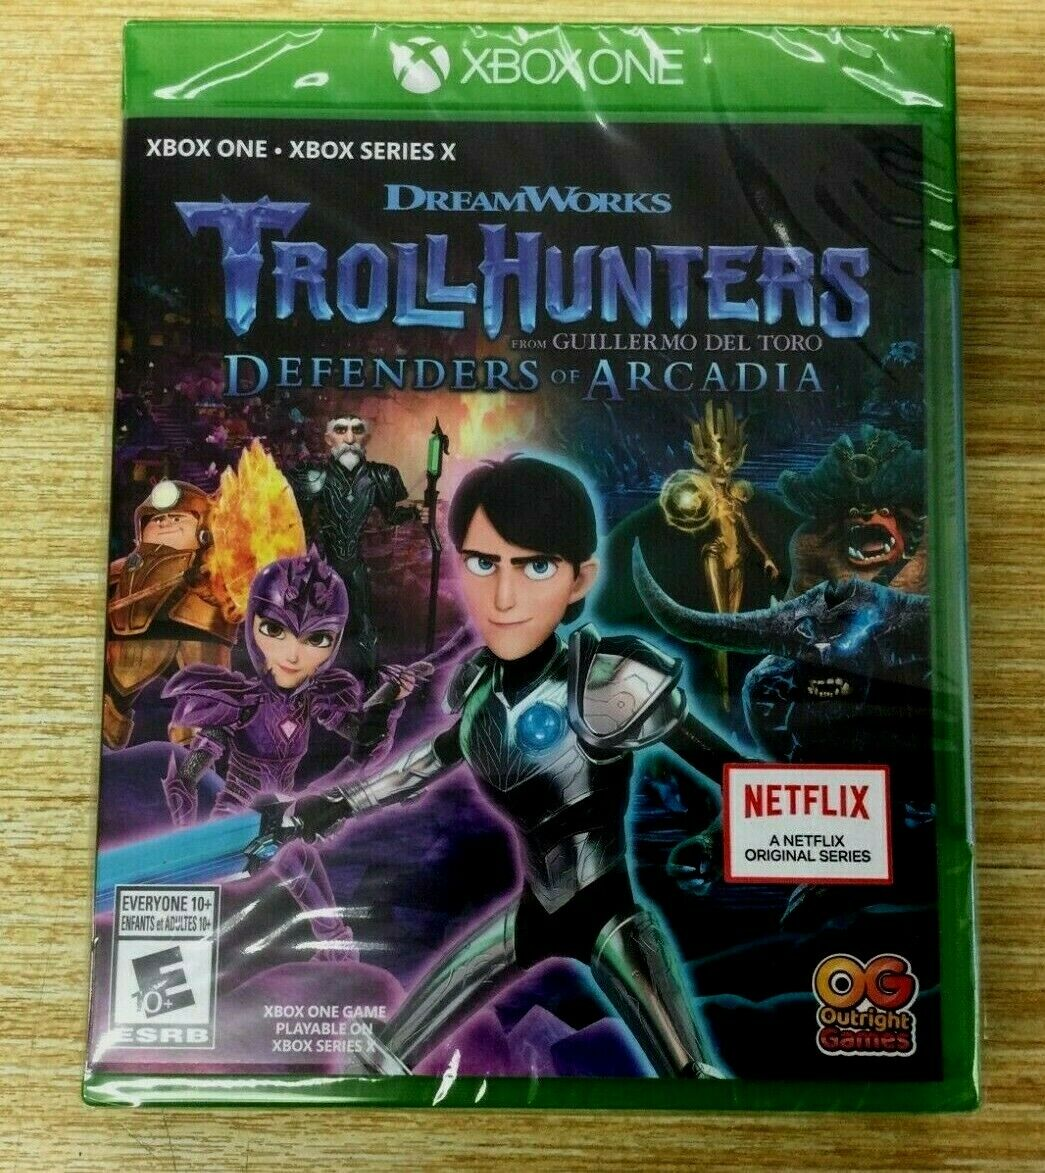 NEW Trollhunters Defenders of Arcadia for MICROSOFT XB1 Xbox One XBOX SERIES X